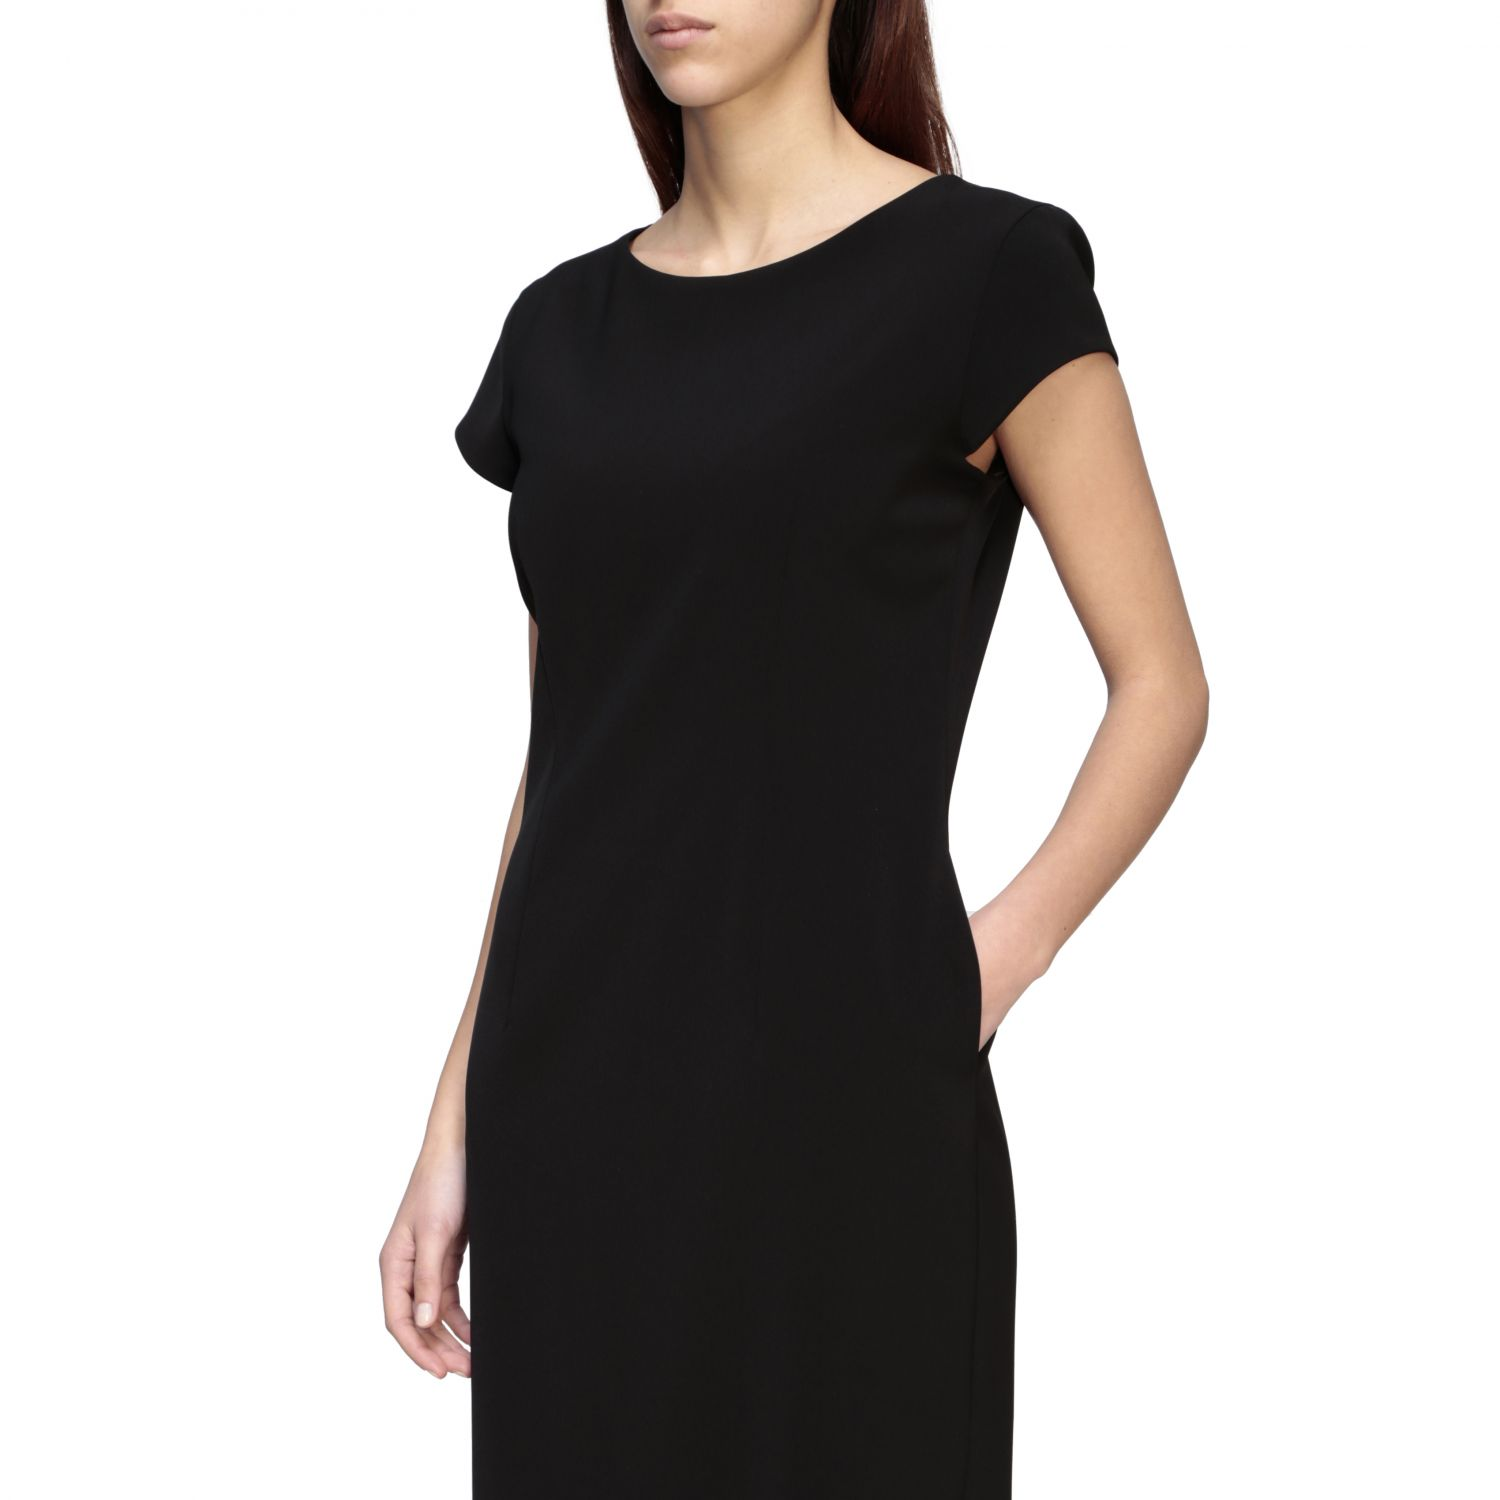 Dress Boutique Moschino: Dress women Boutique Moschino black 4